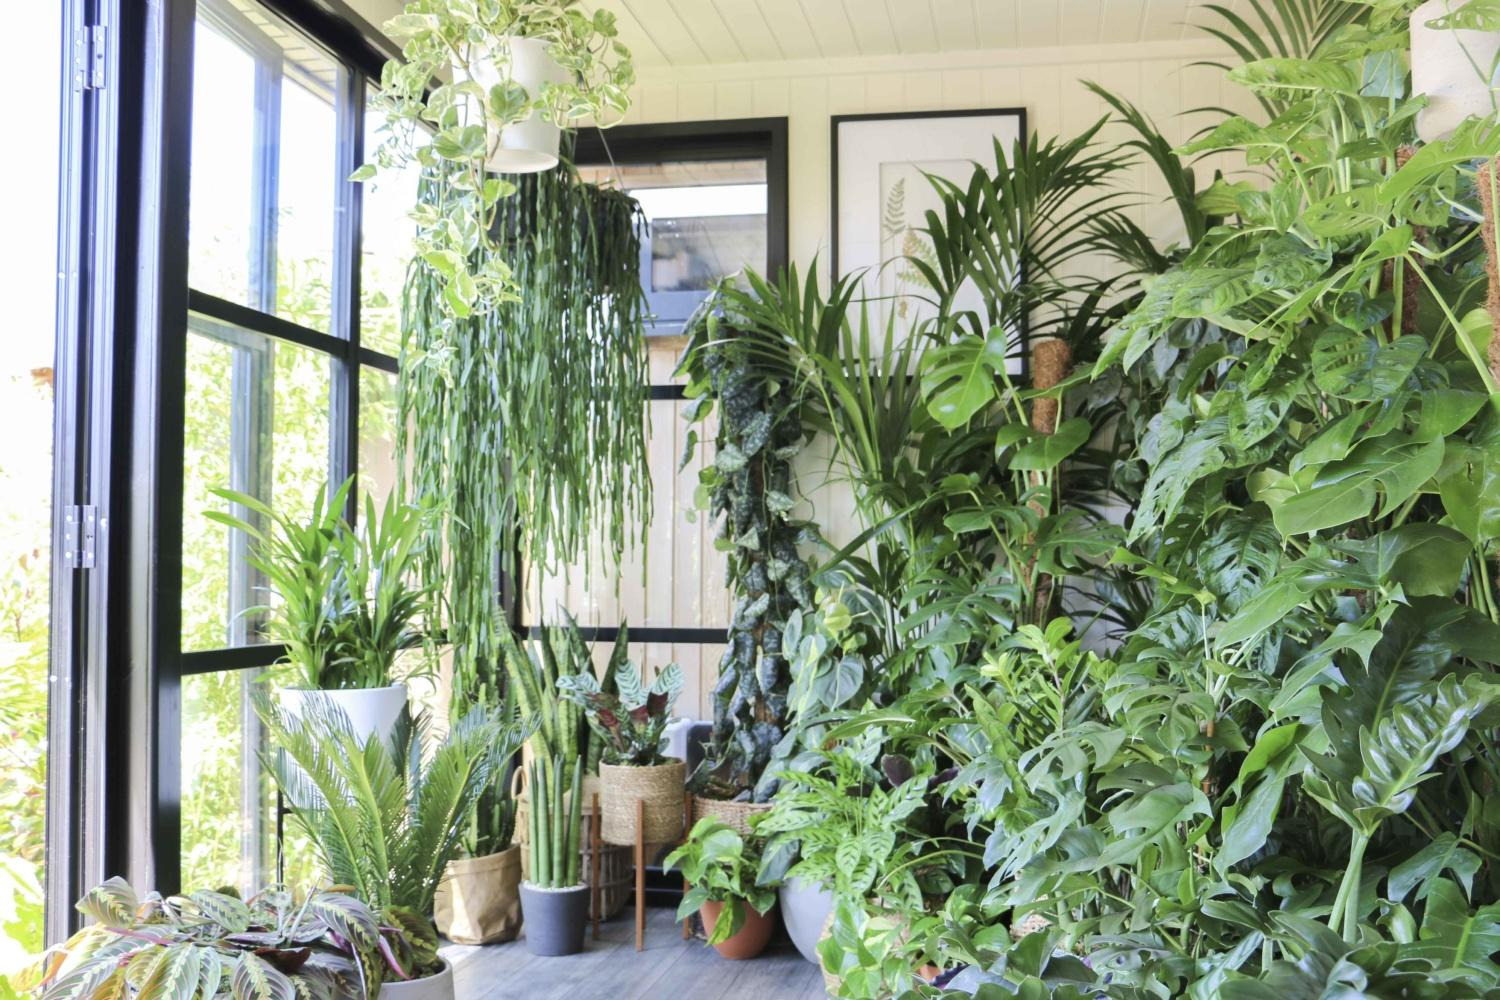 Malvern Garden Buildings have joined forces with Ian Drummond, Indoor Garden Design's Creative Director and plant stylist to the stars, to create a plant-filled 'wobble room' for Virtual RHS Chelsea Flower Show 2020.